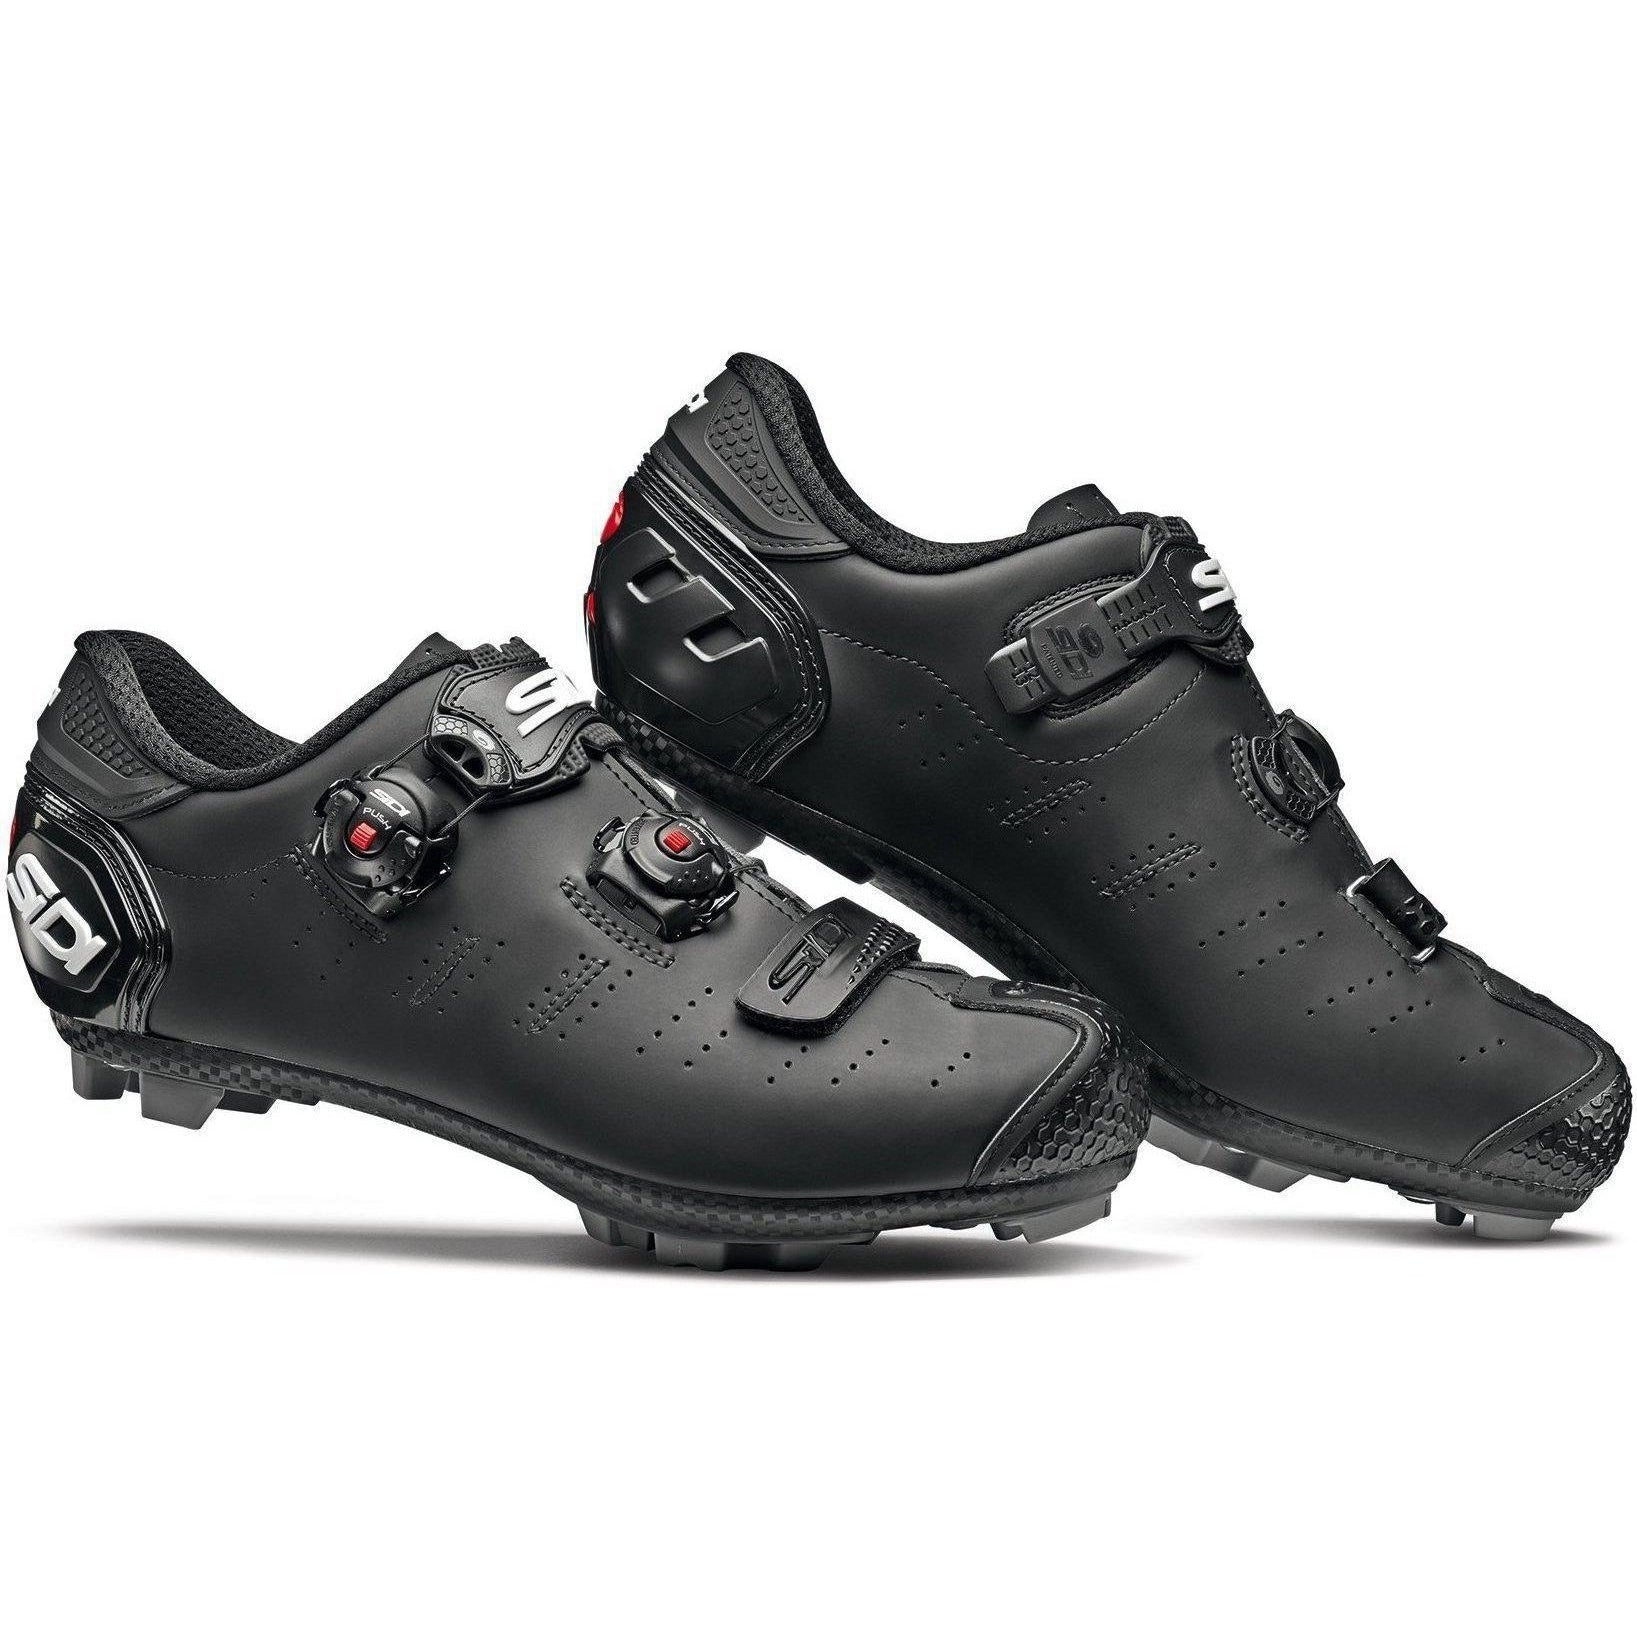 Sidi Dragon 5 SRS Mega Fit MTB Shoes - Matt